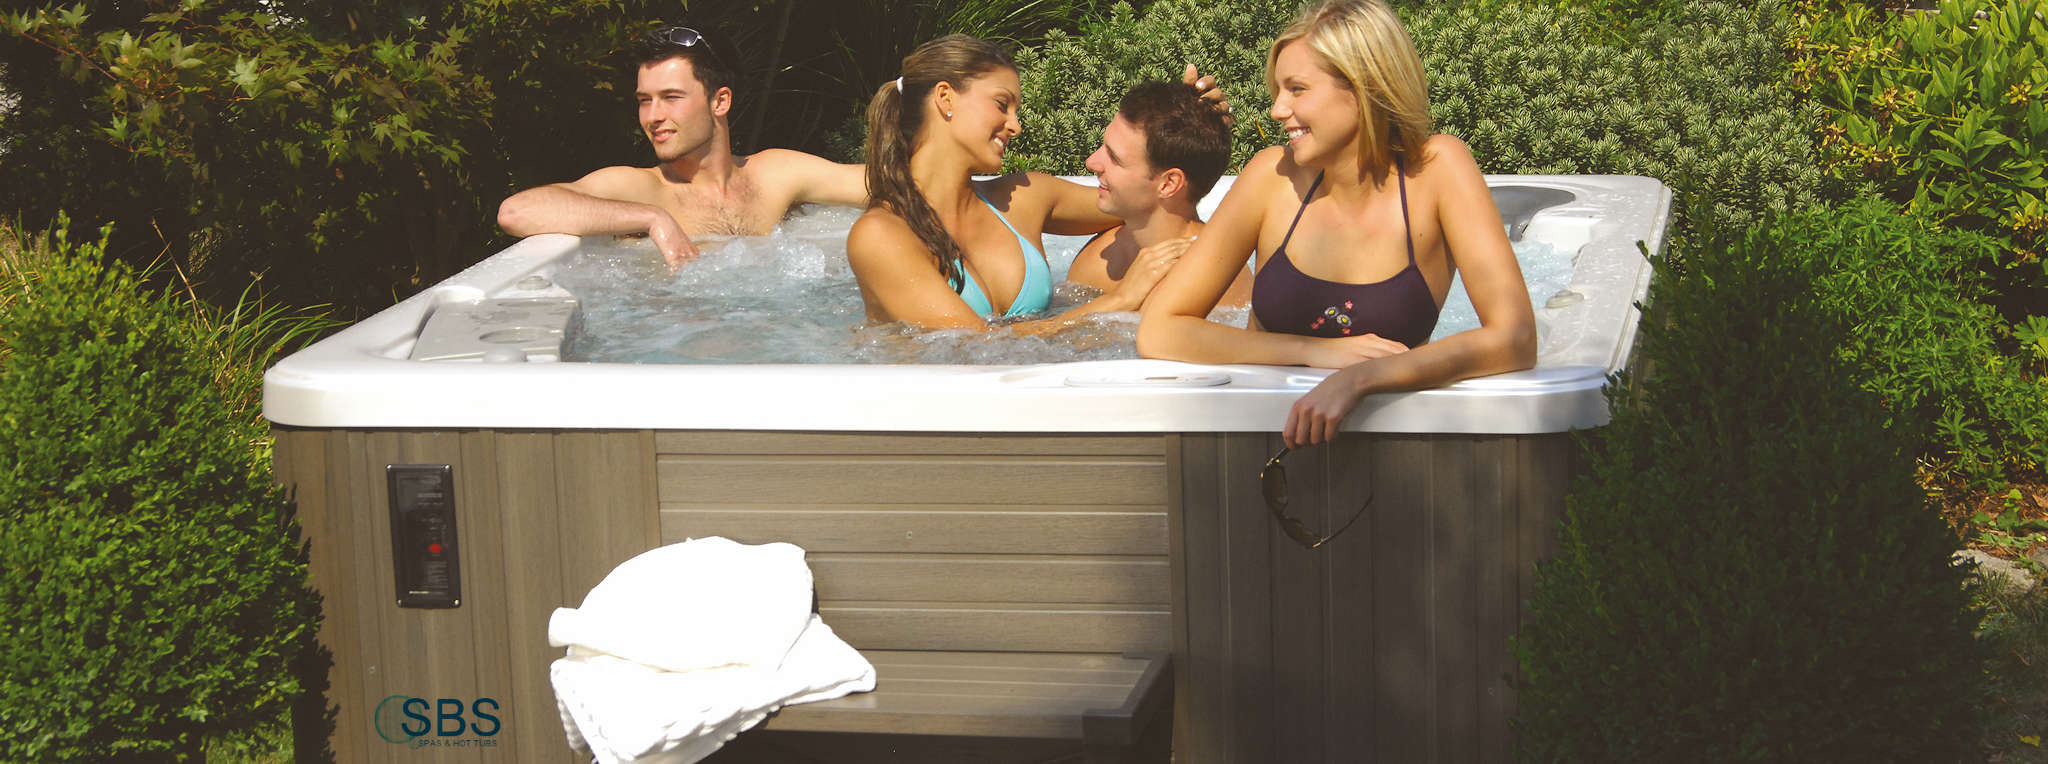 special offers on great hot tubs fro the UK